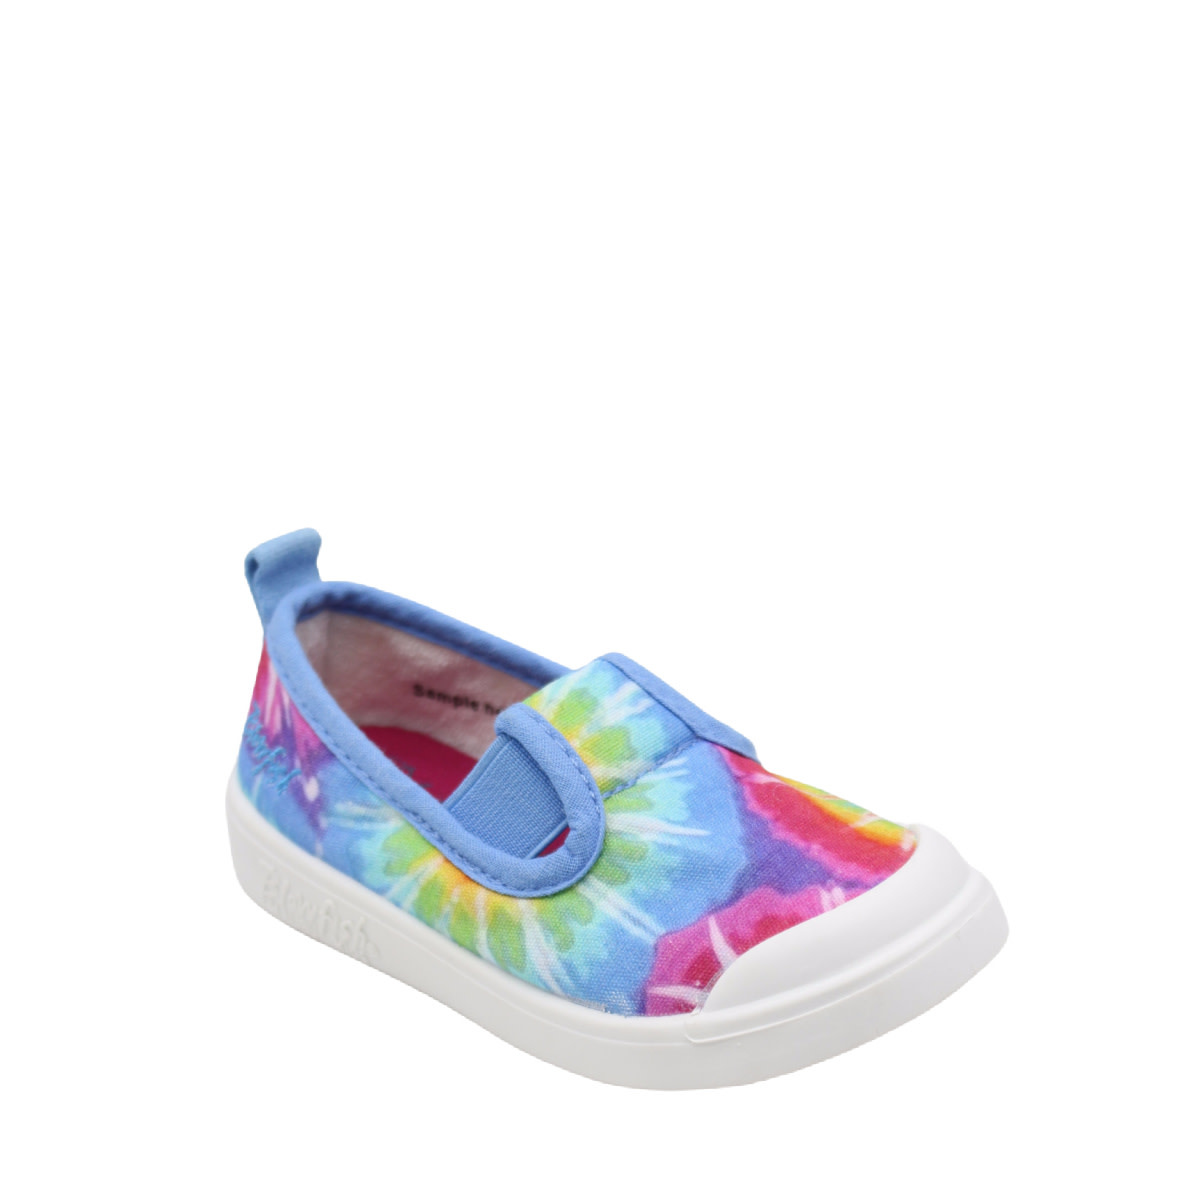 Blowfish Malibu Blowfish Kids Slip-On Hippie Tie Dye